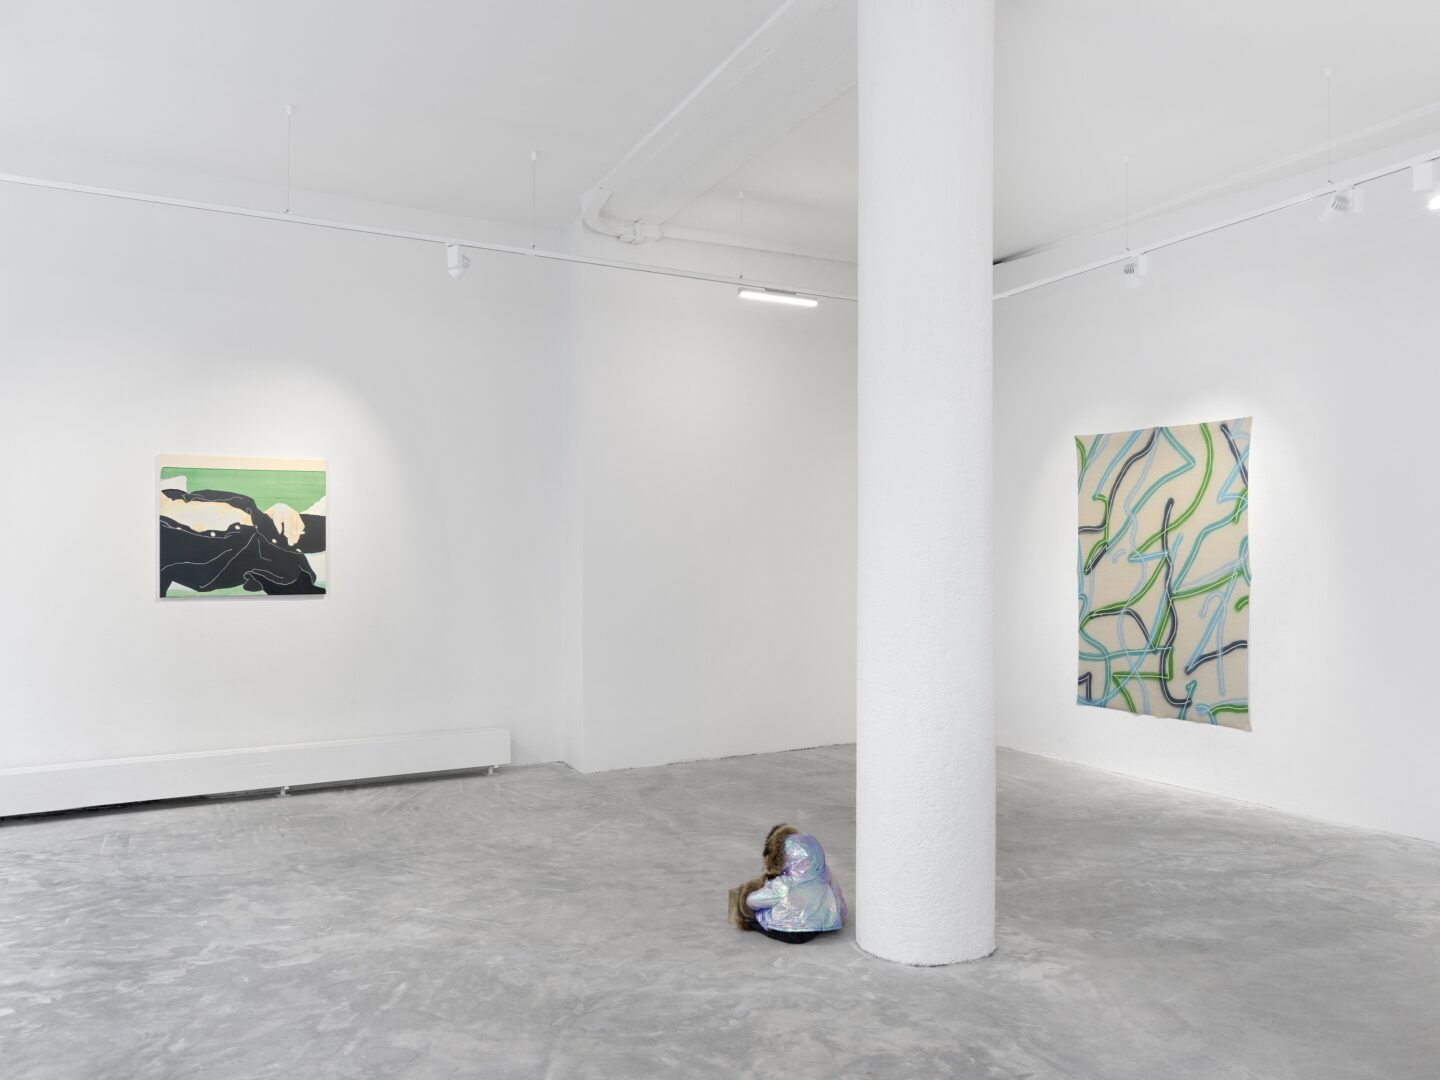 Exhibition View Groupshow «Swiss Made, Chapter II; view on David Weishaar, Rest on Green, 2019, Denis Savary, Öyvind, 2015, Christelle Kahla, Dermaplast, 2018» at Ribordy Thetaz, Geneva, 2020 / Photo: Annik Wetter / Courtesy: the artists and Ribordy Thetaz